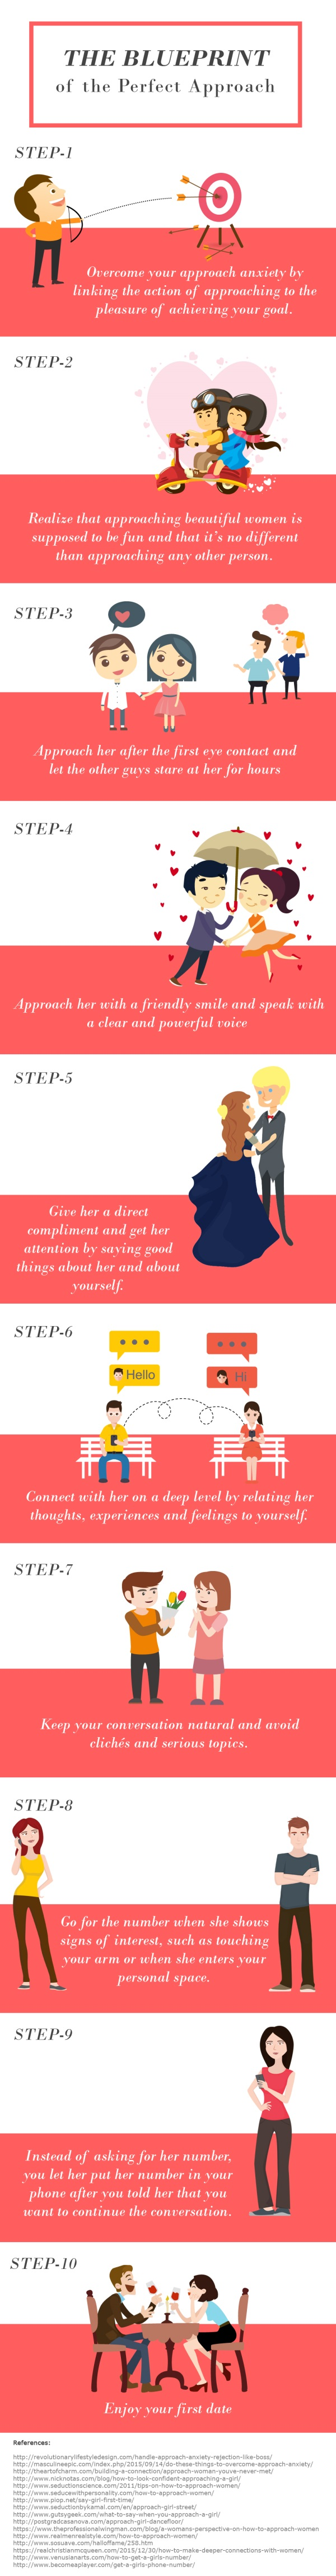 how to approach women infographic